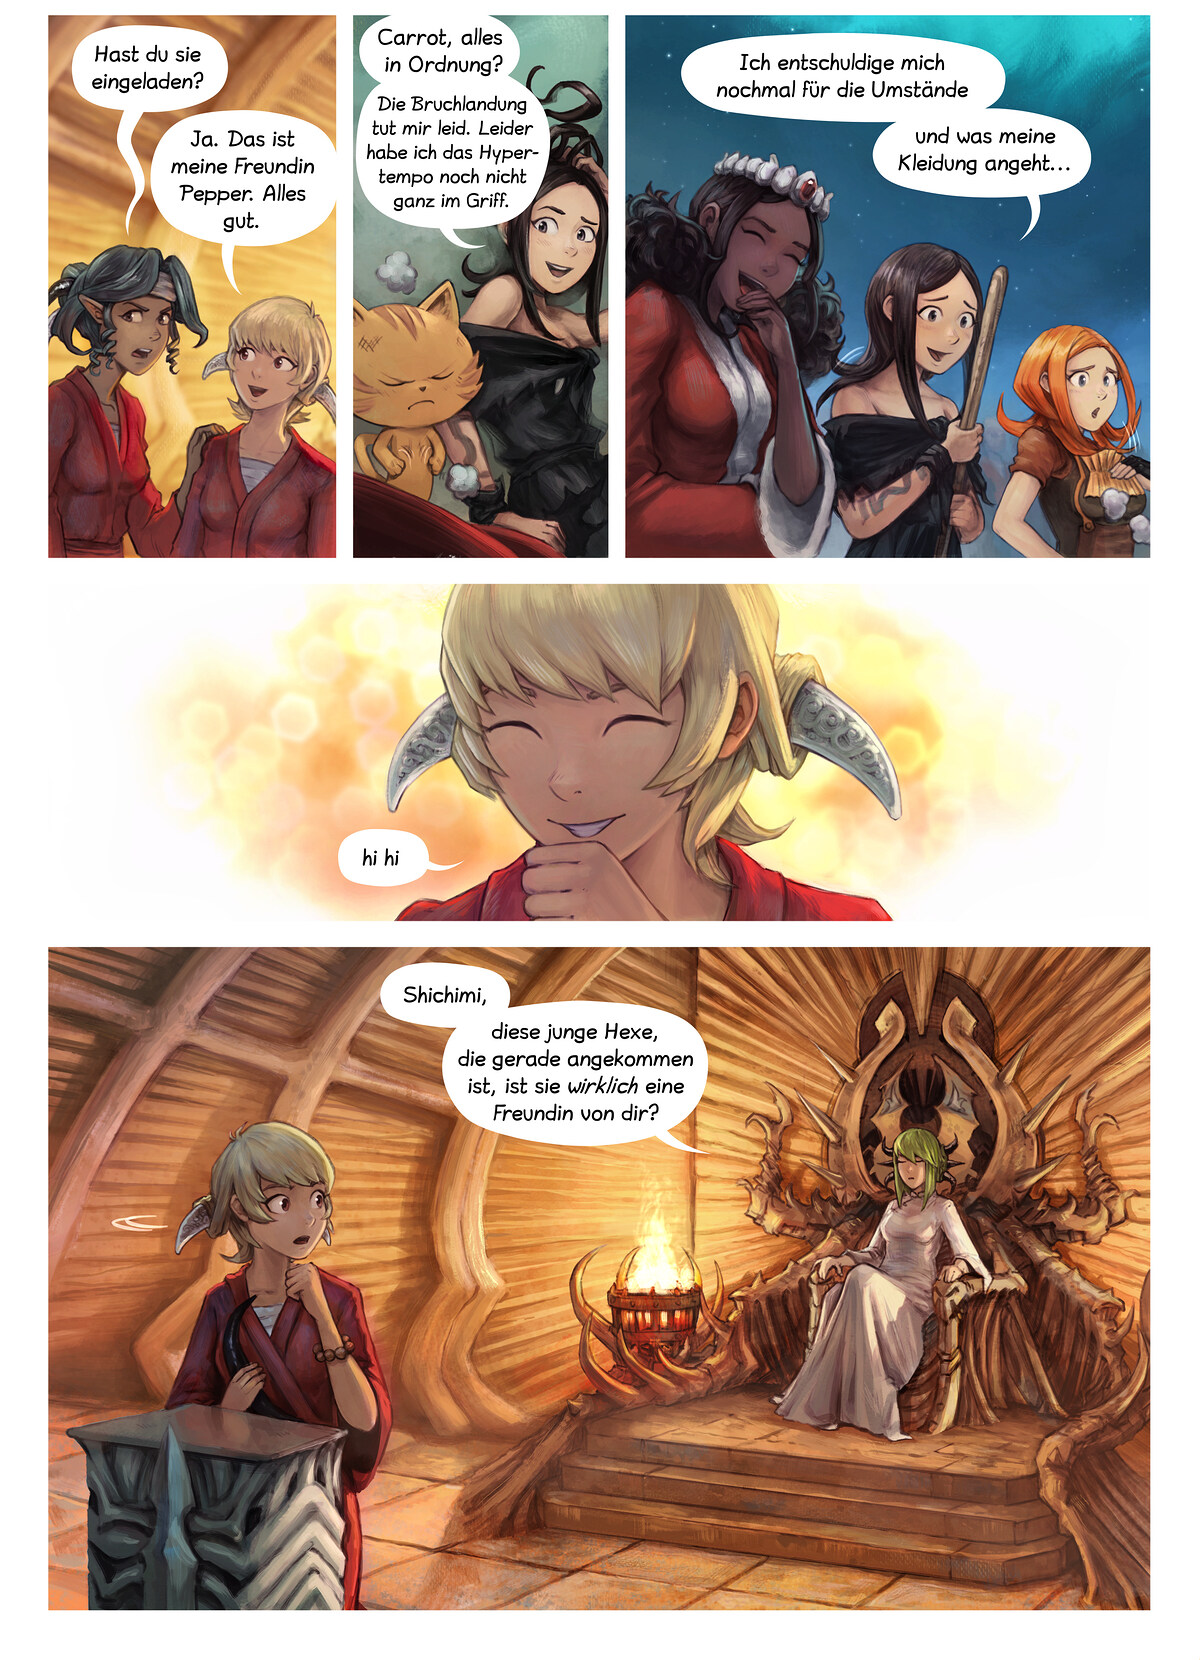 Episode 34: Shichimis Abschluss, Page 3